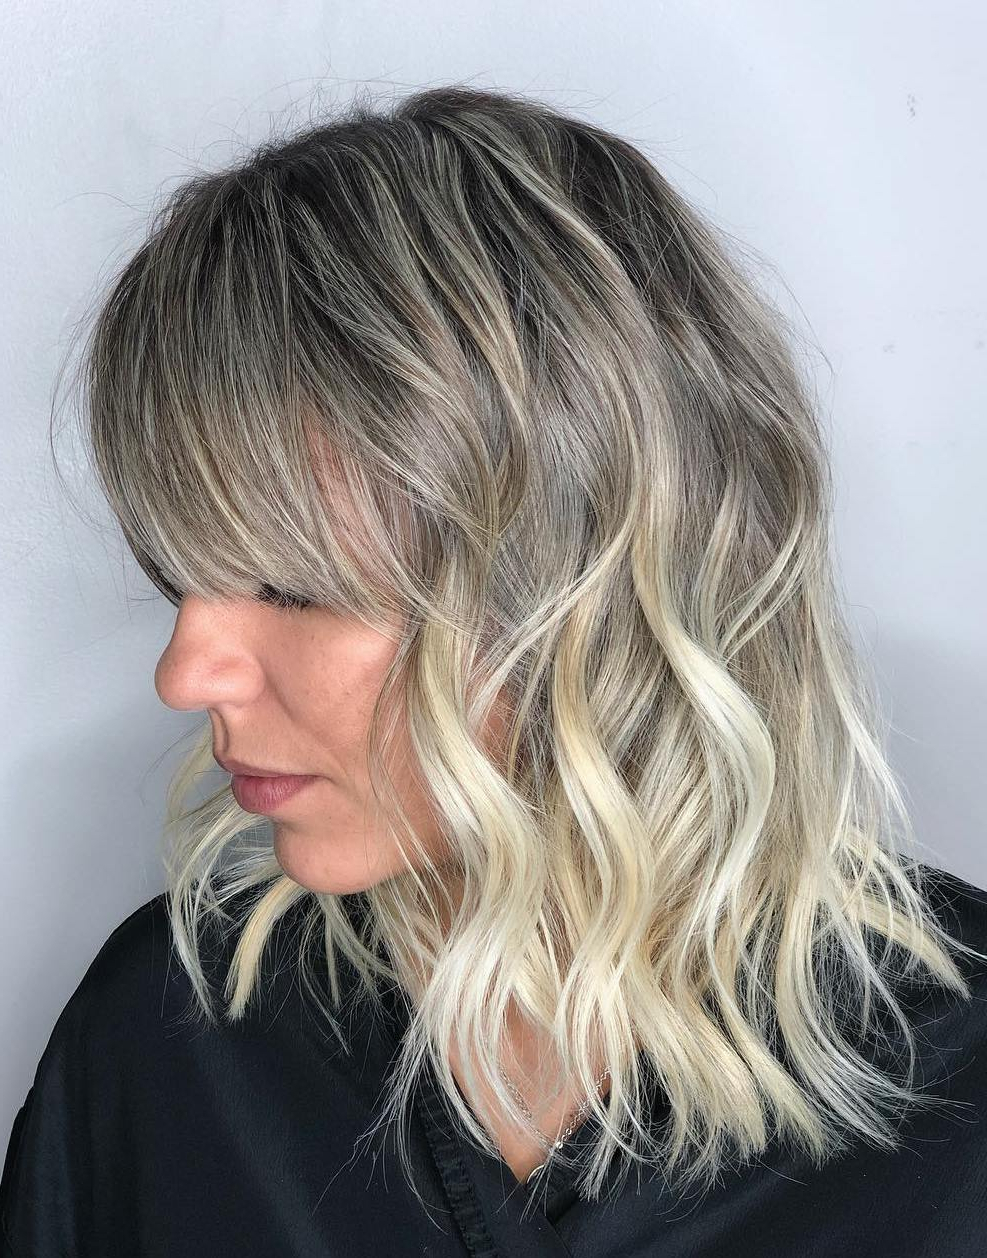 50 Head Turning Hairstyles For Thin Hair To Flaunt In 2019 Throughout Newest Long Feathered Shag Haircuts For Fine Hair (View 8 of 20)